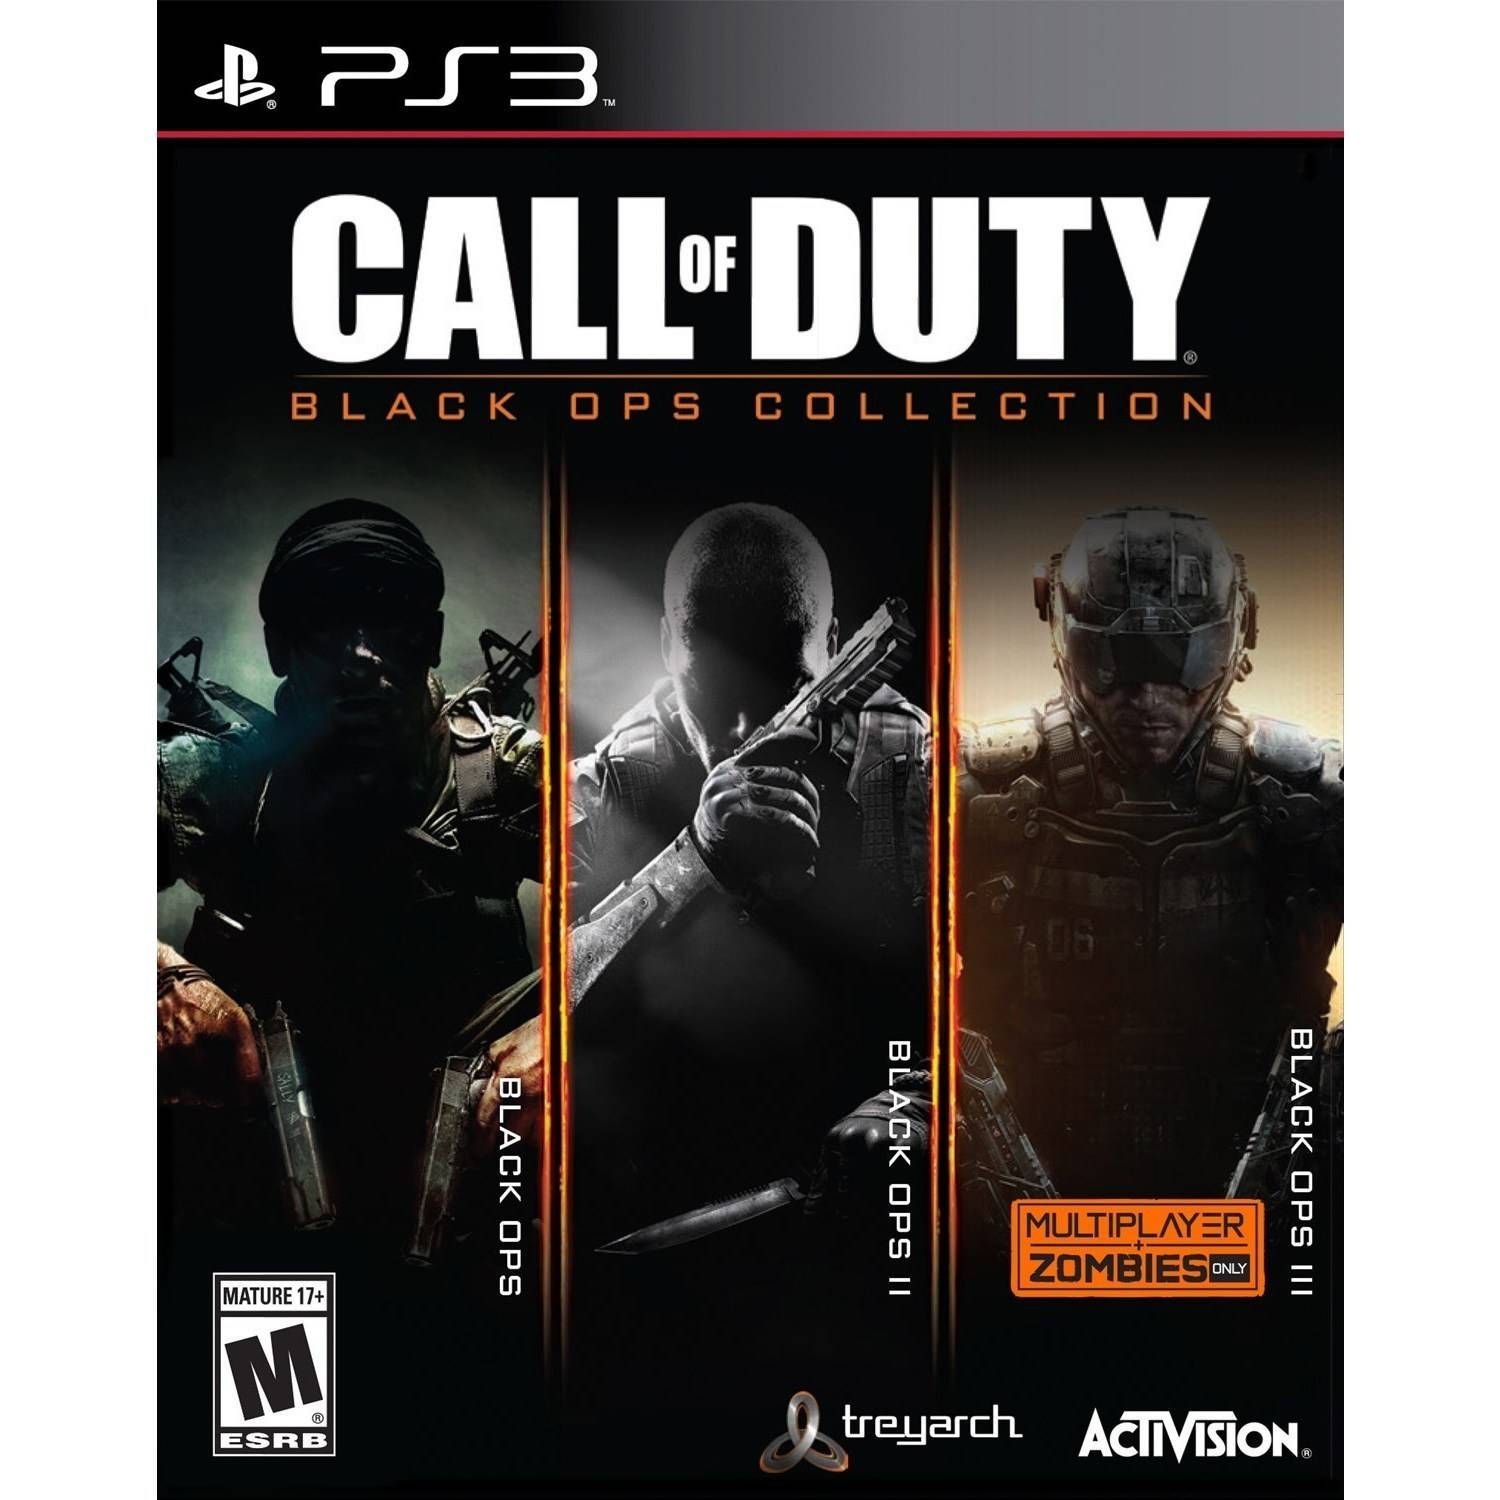 Call of Duty: Black Ops Collection, Activision, PlayStation 3, 047875880061